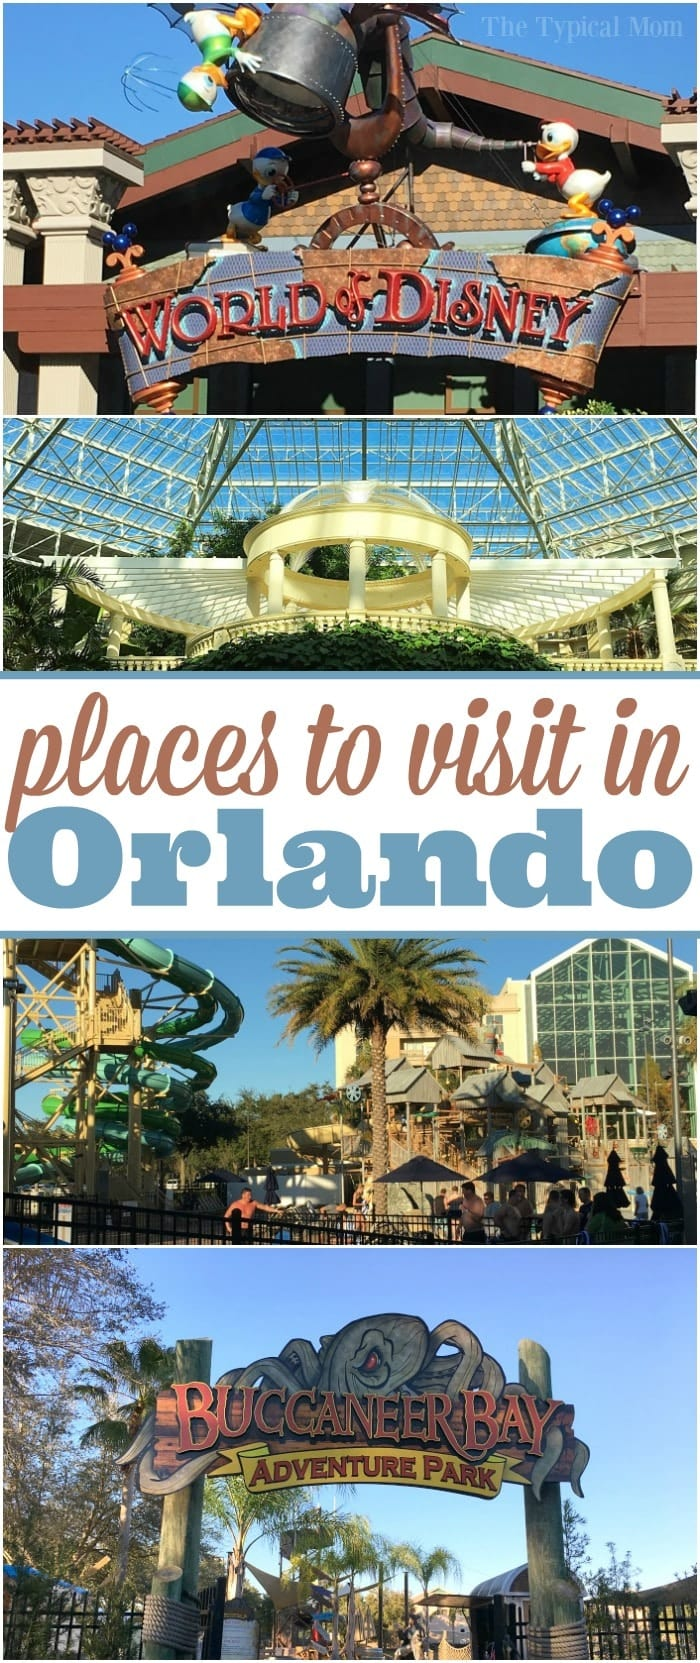 The best places to visit in Orlando Florida and where to go to get discount tickets to amusement parks there as well as cheap hotel stays.